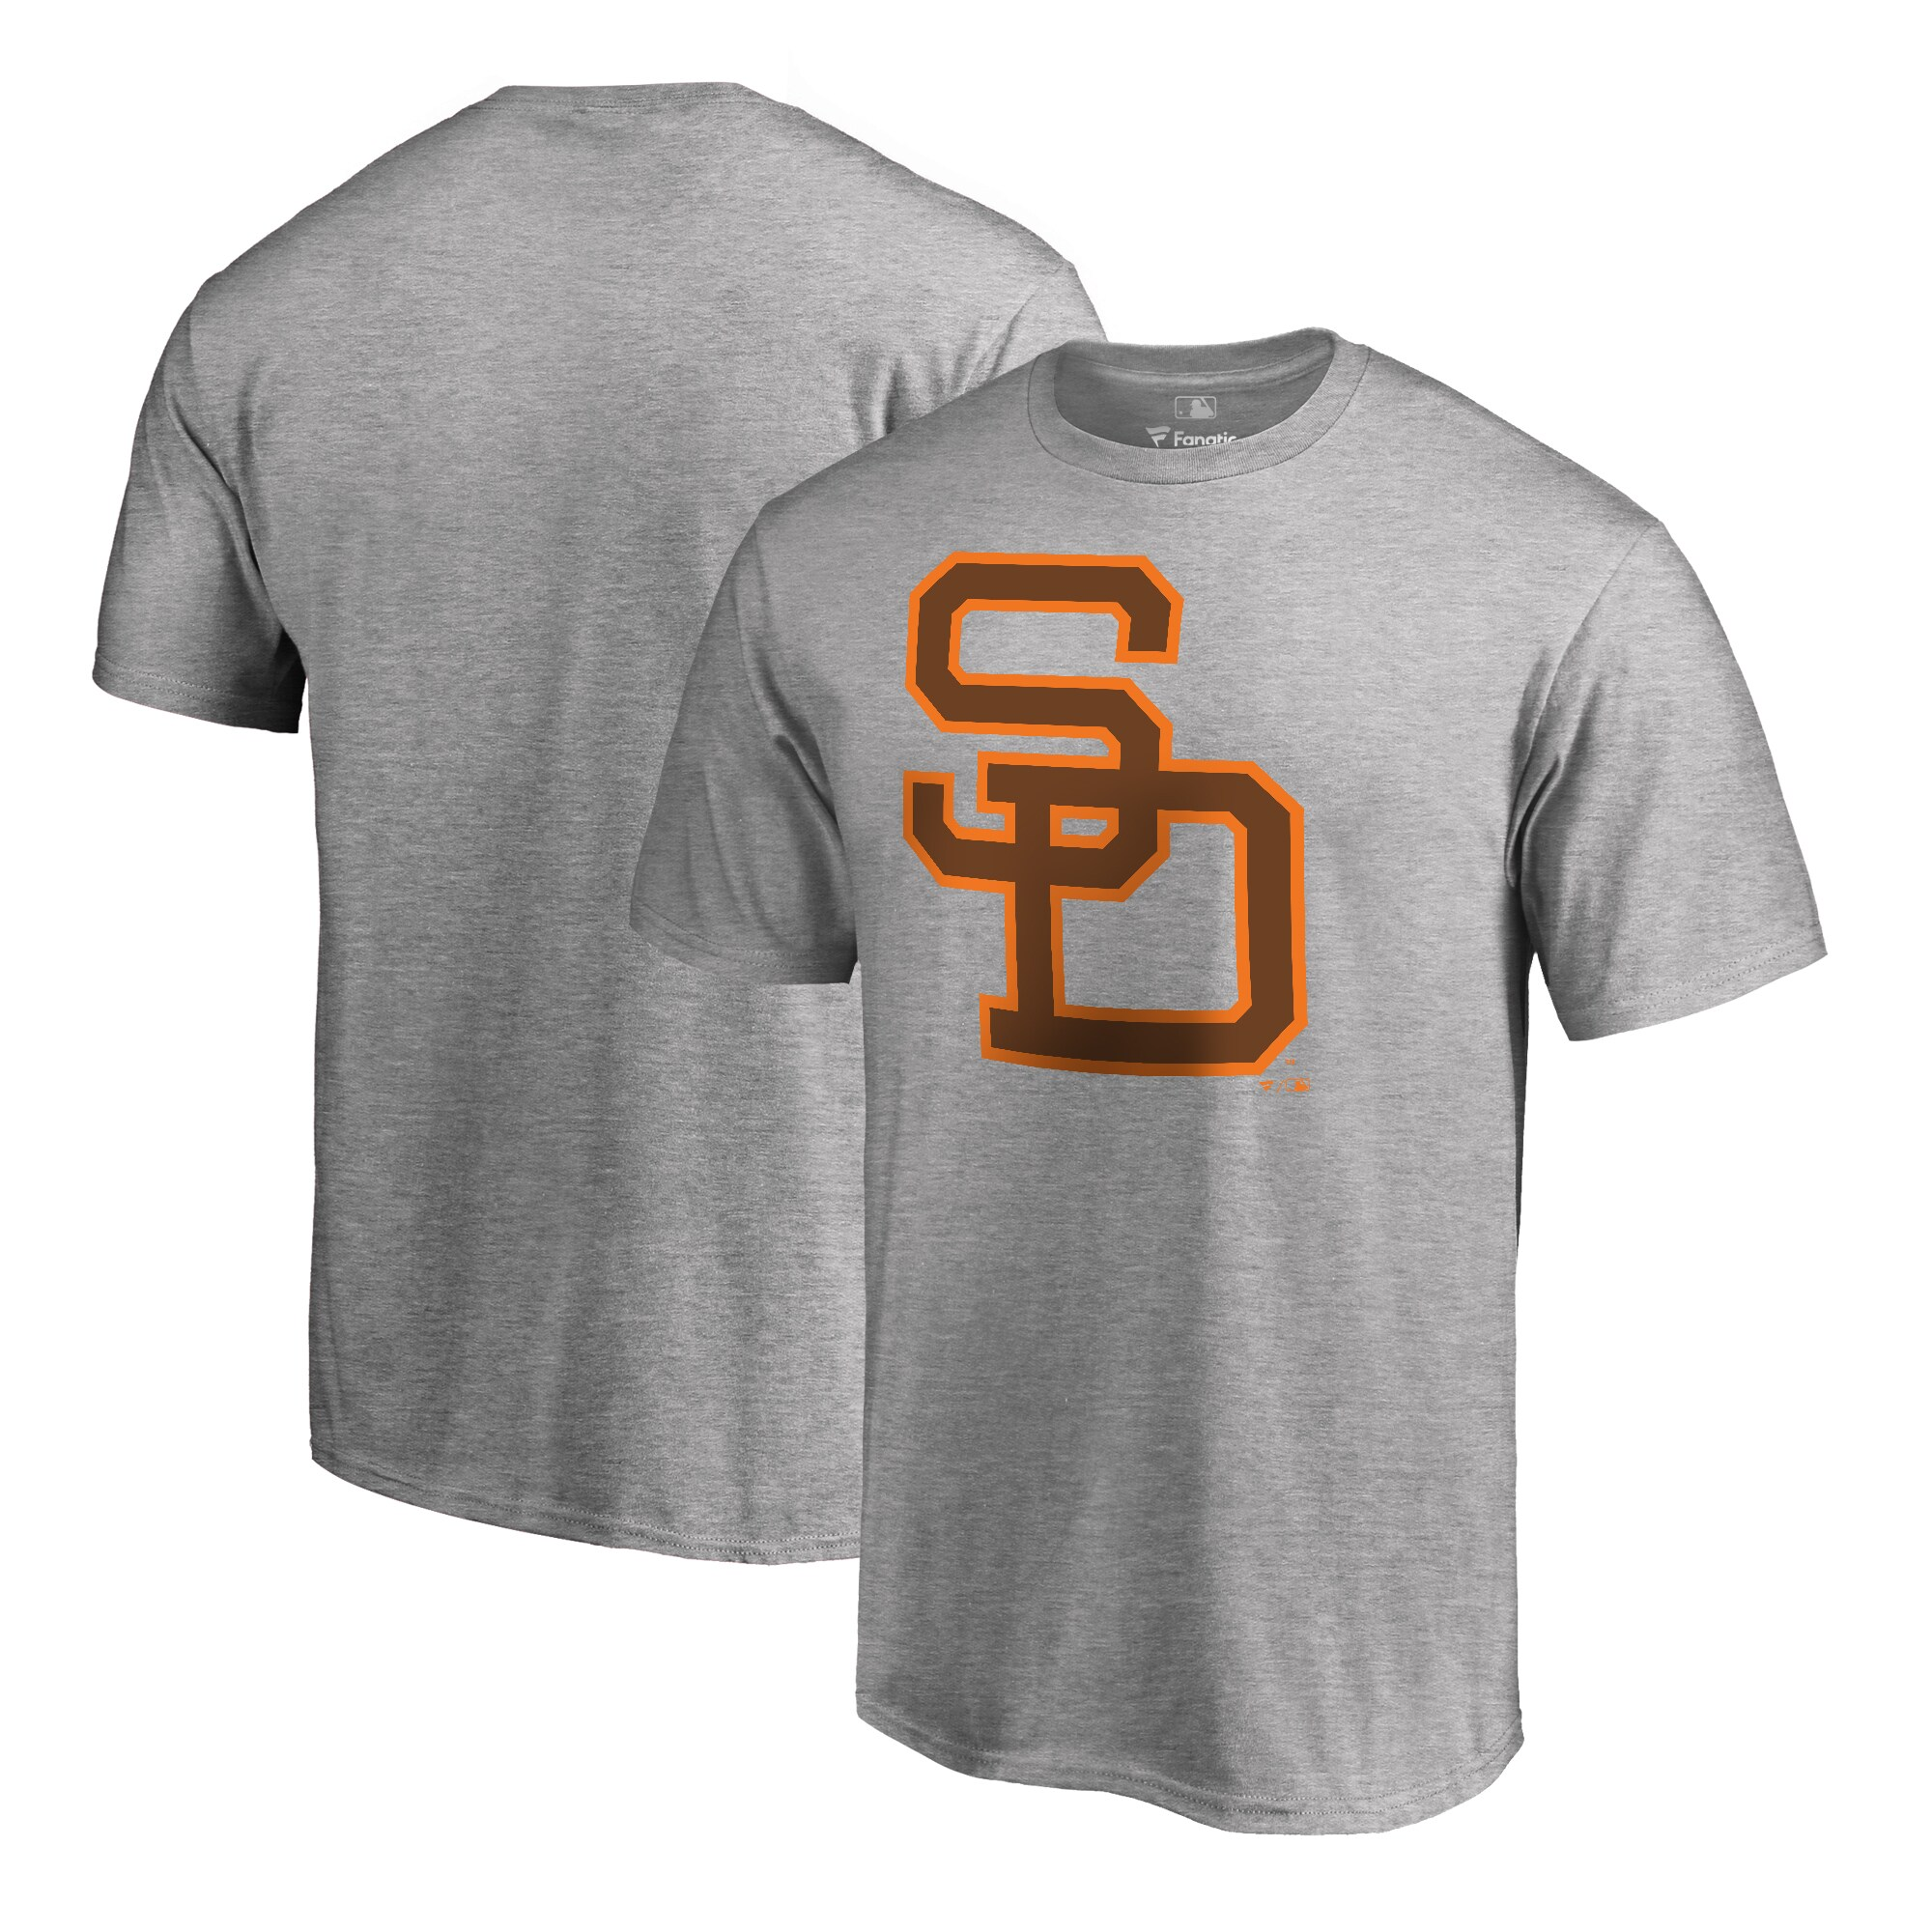 San Diego Padres Fanatics Branded Cooperstown Collection Huntington T-Shirt - Ash